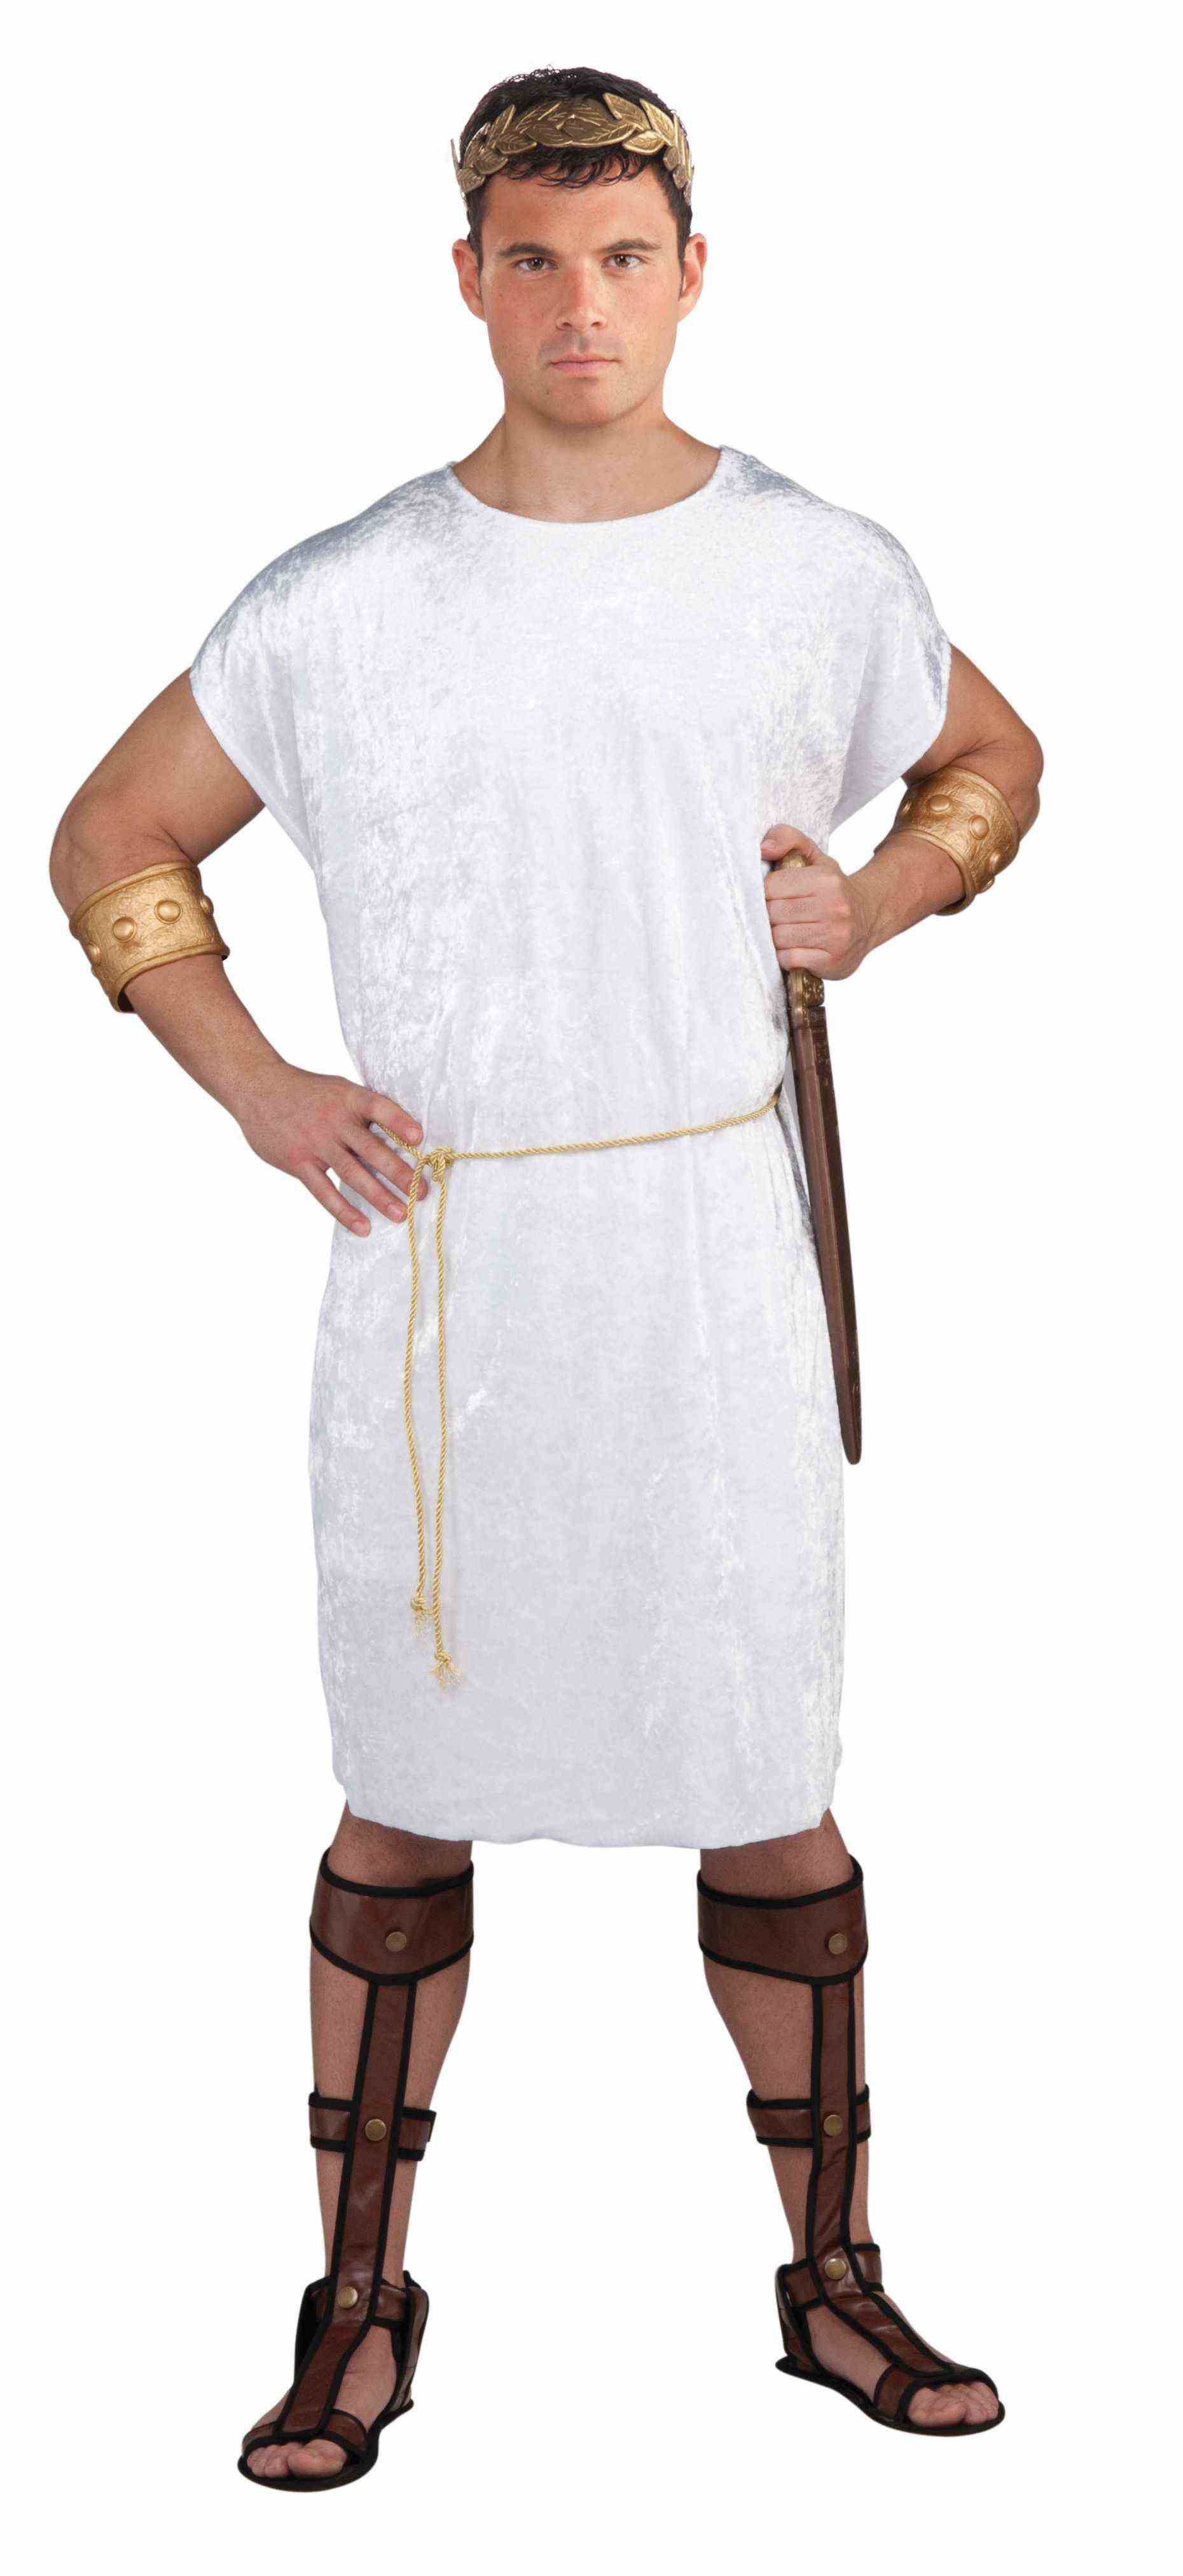 Black Men/'s Tunic with Gold Rope for Adult Viking Roman Soldier Peasant Medieval